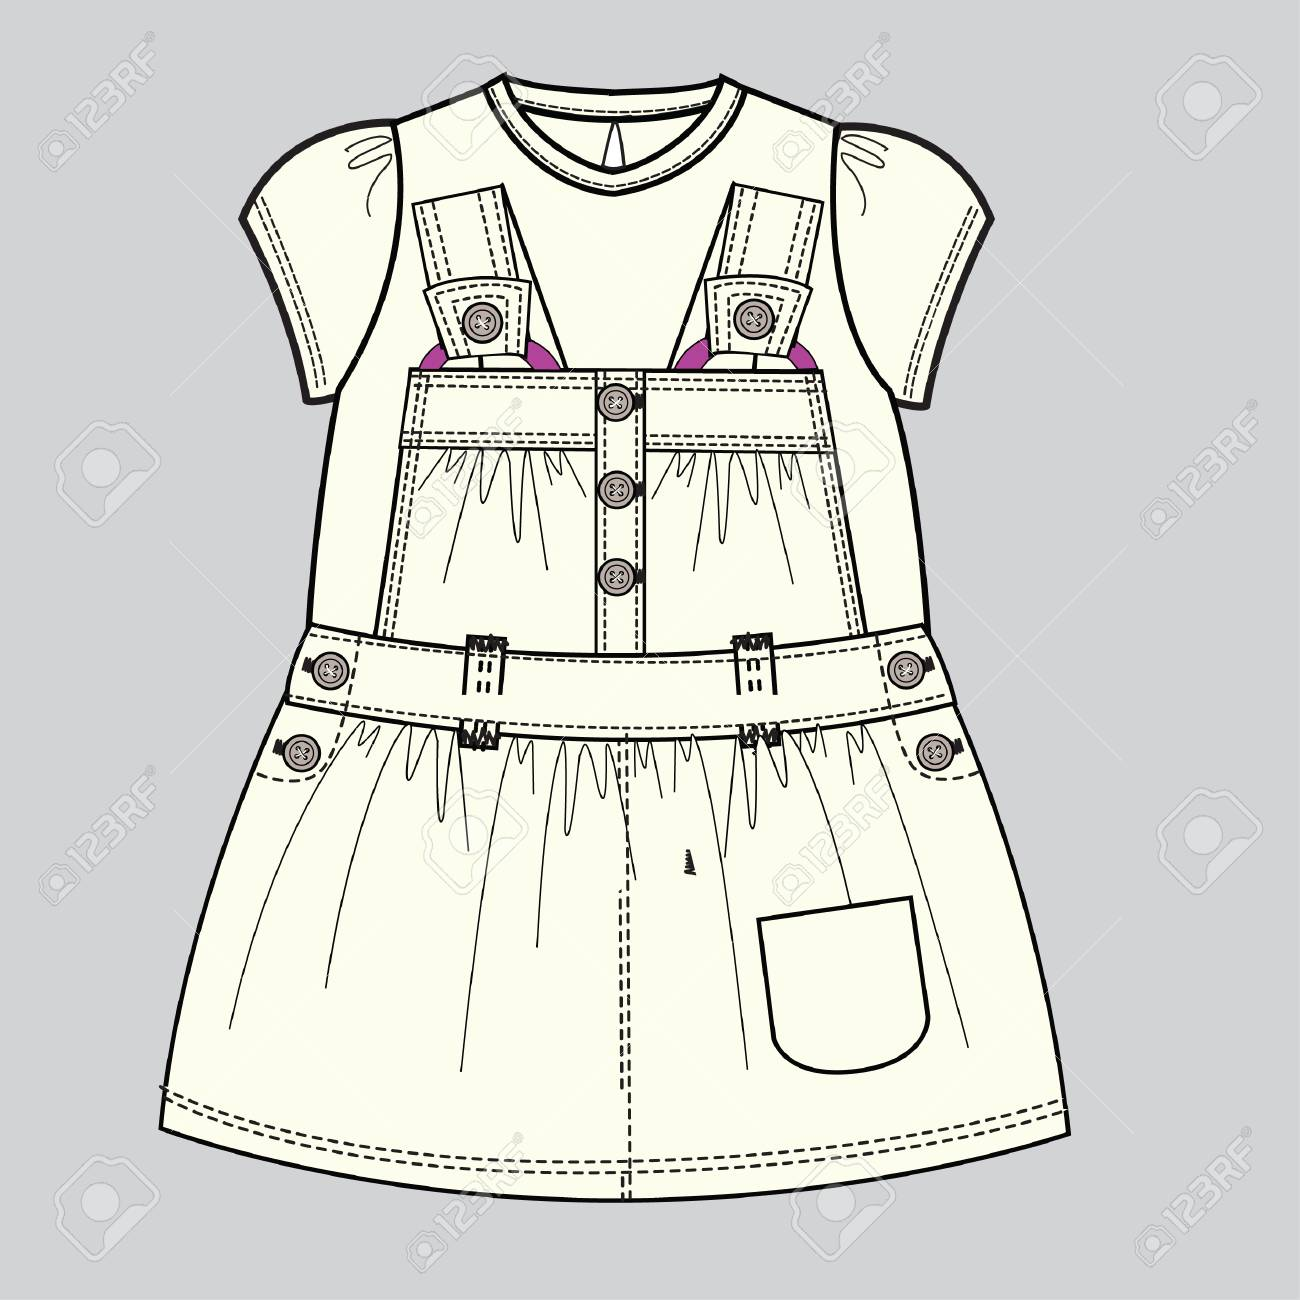 baby clothes flat sketch template isolated royalty free cliparts